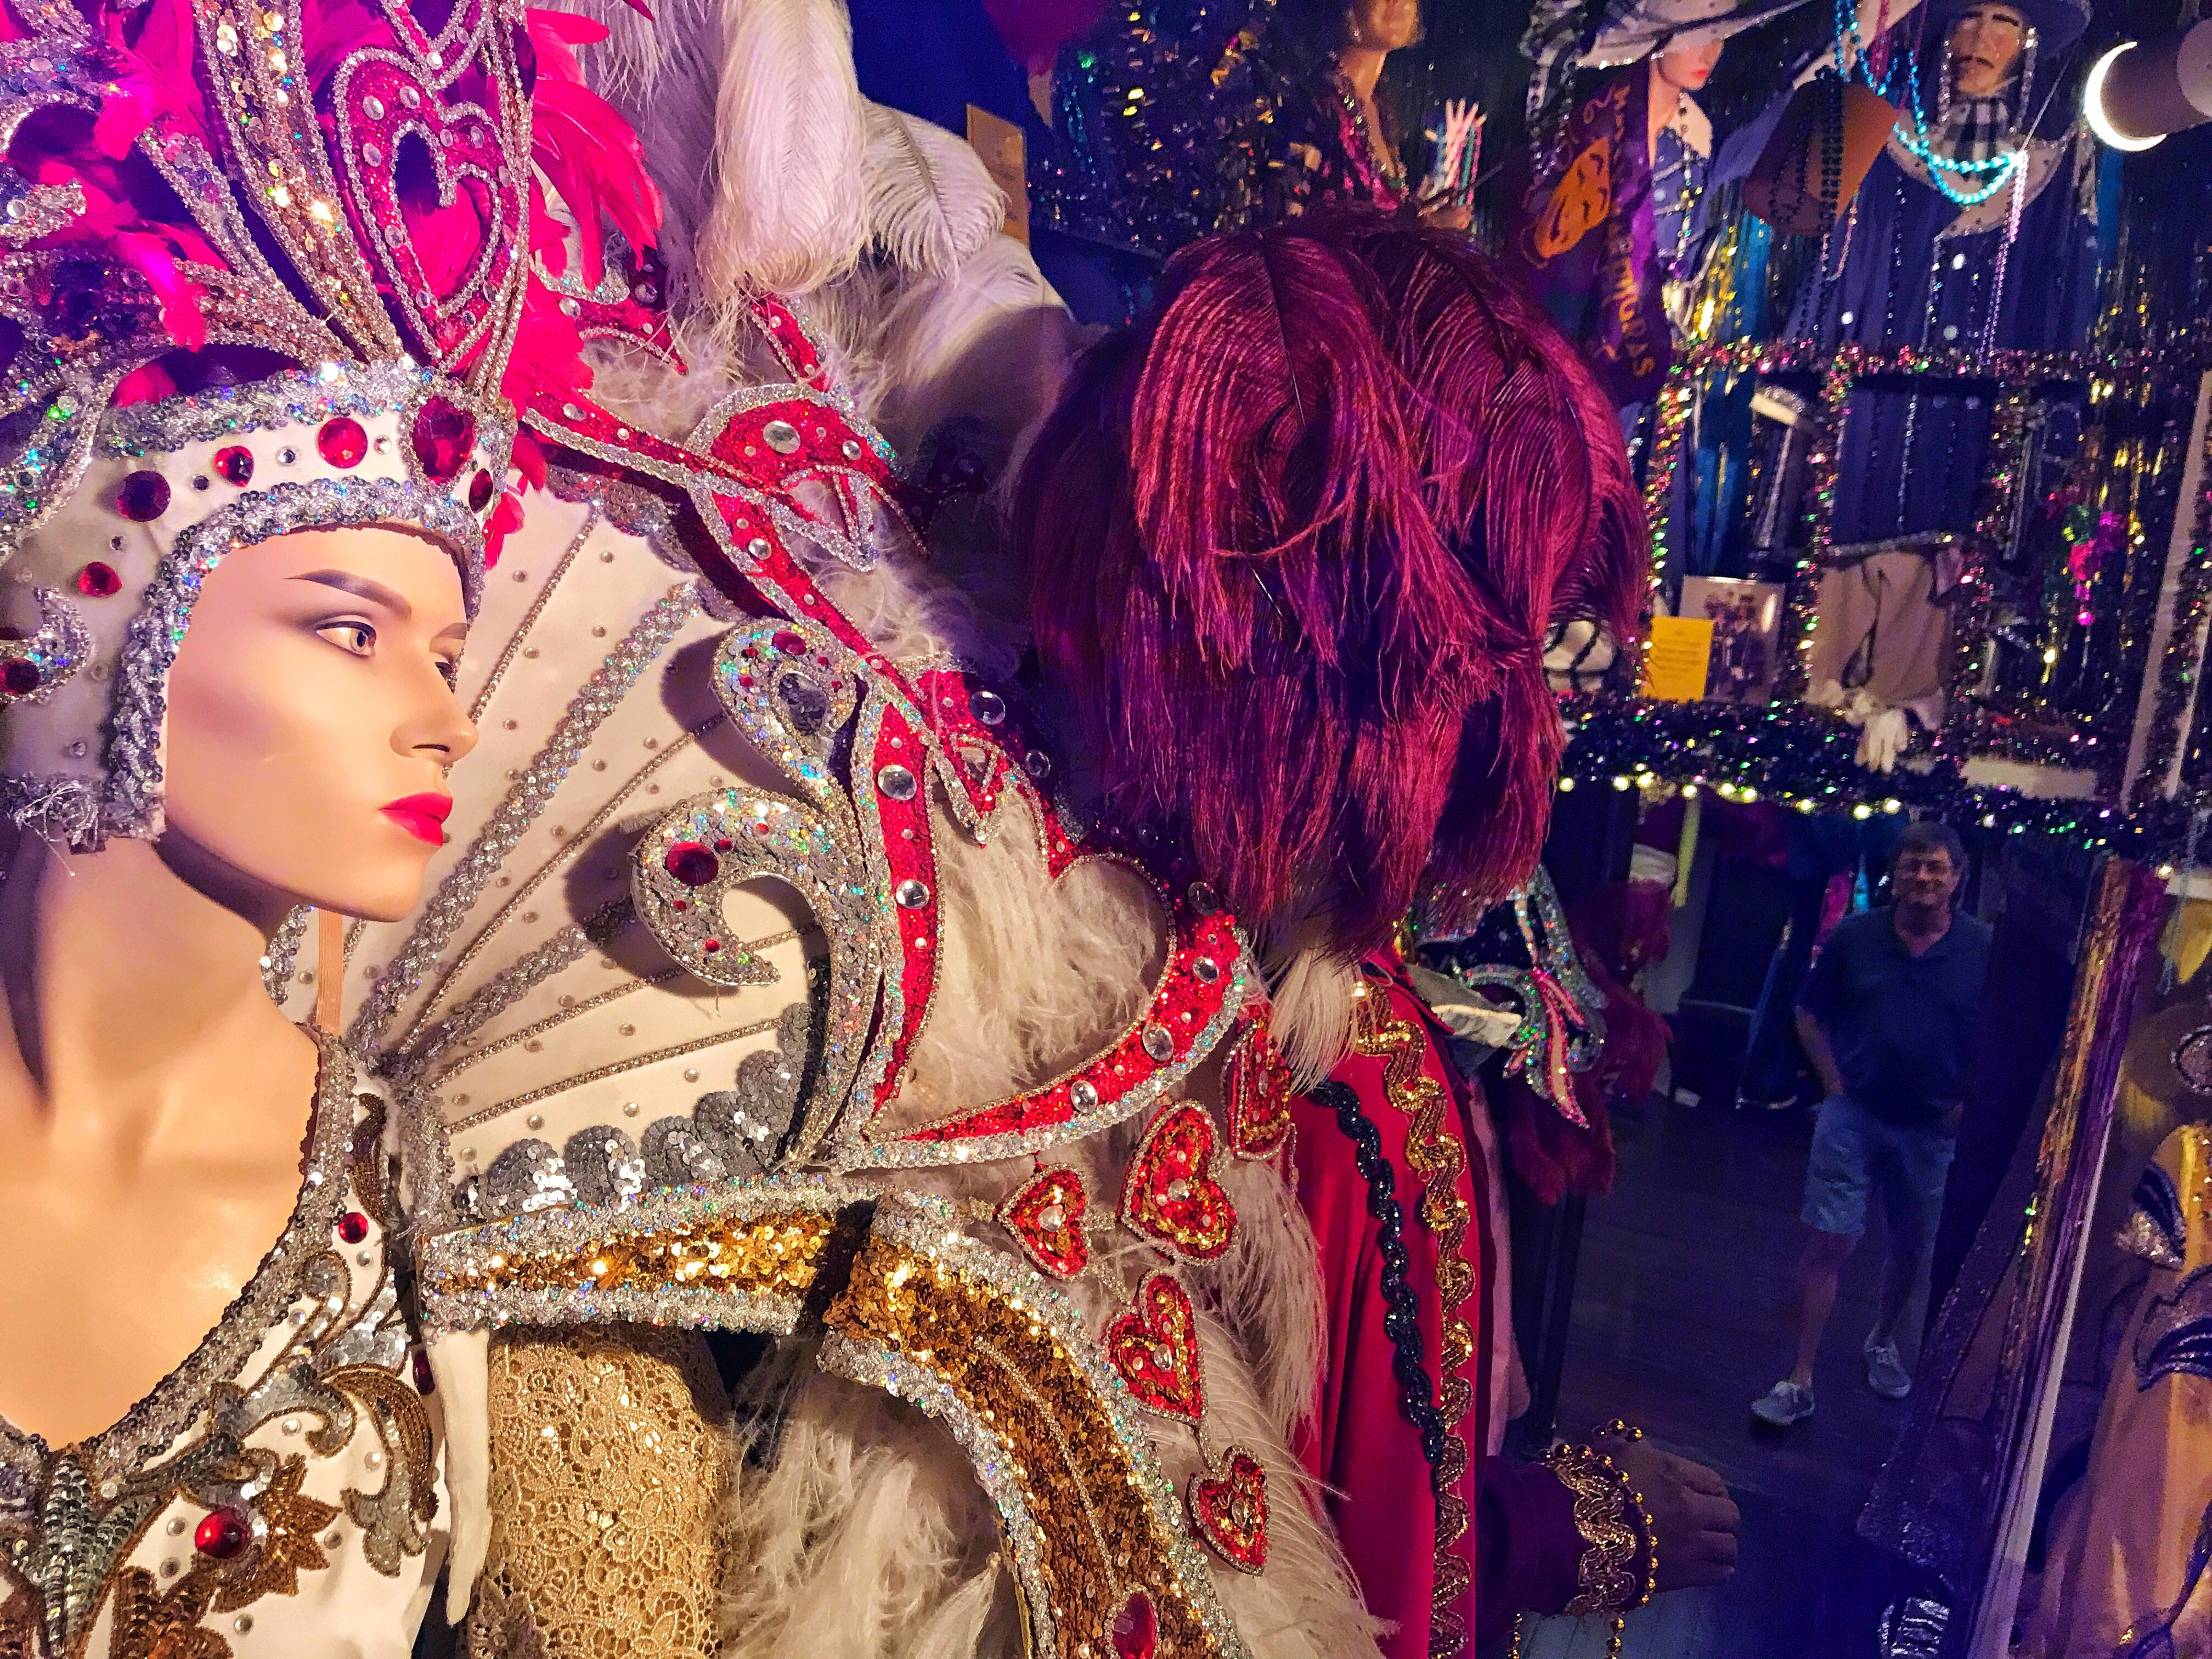 Kickoff Carnival With A Visit to the World's Largest Mardi Gras Museum